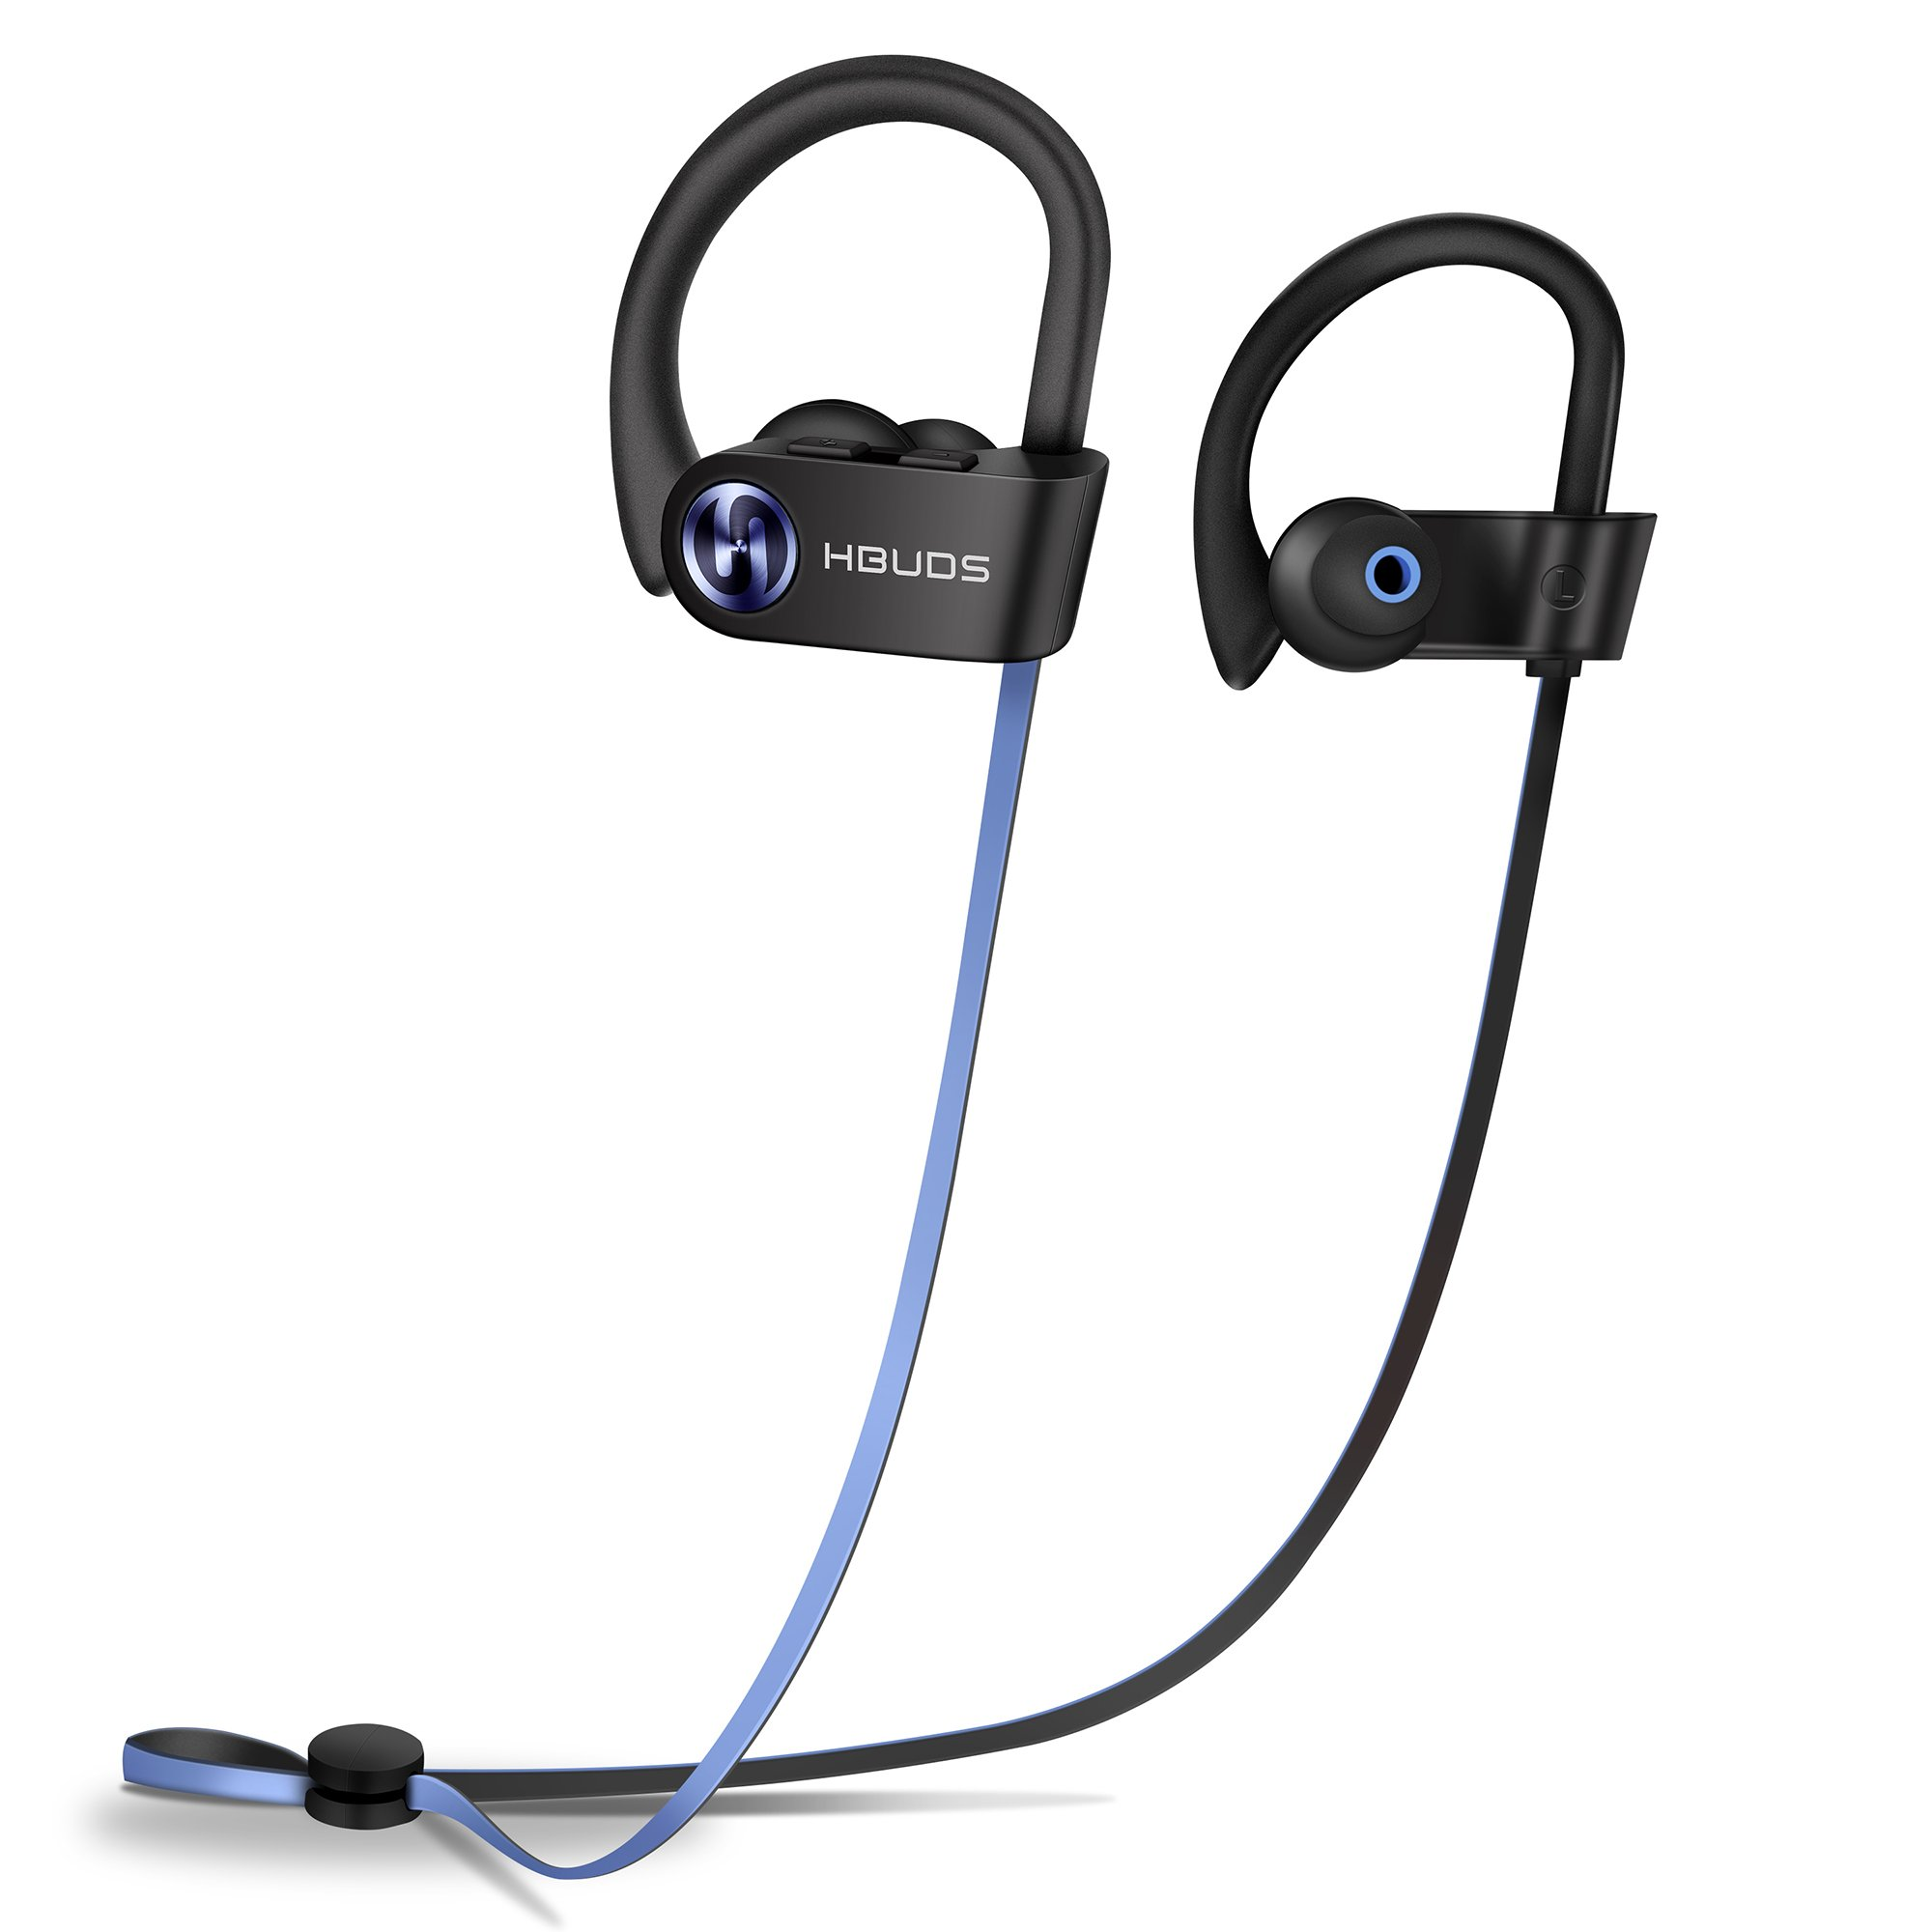 Auriculares Bluetooth Earphones Sports Hbuds H1 Ipx7 Sweaterproof Bluetooth 4.1 In-ear Earbuds Con Mic Para Correr 9 Hor